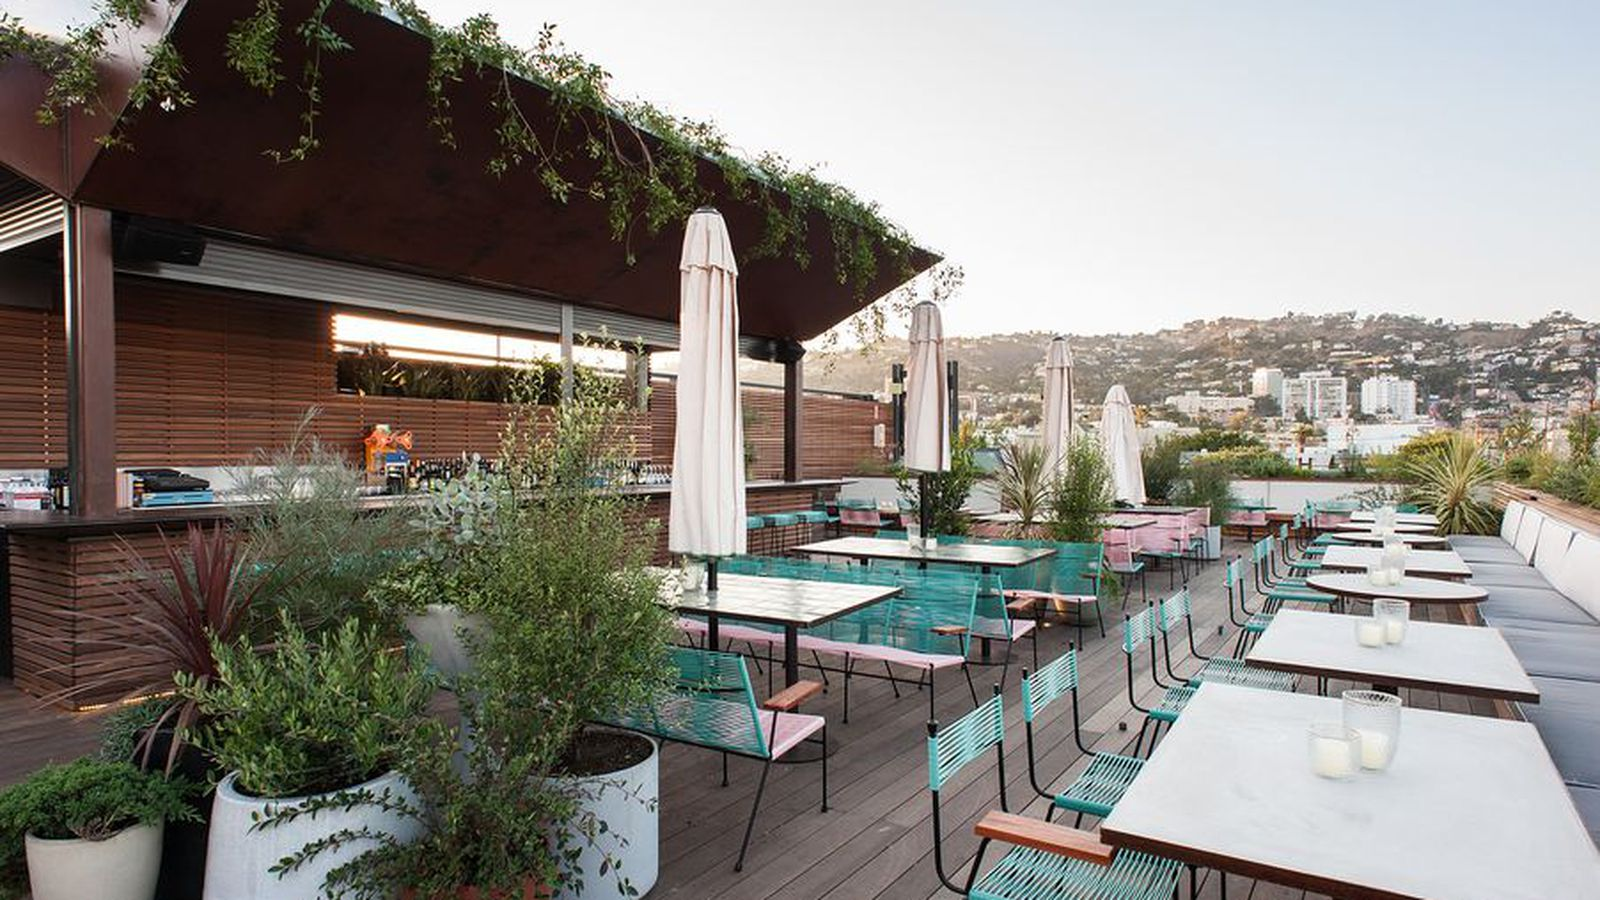 Outdoor Dining Restaurants In Los Angeles, Spring 2016